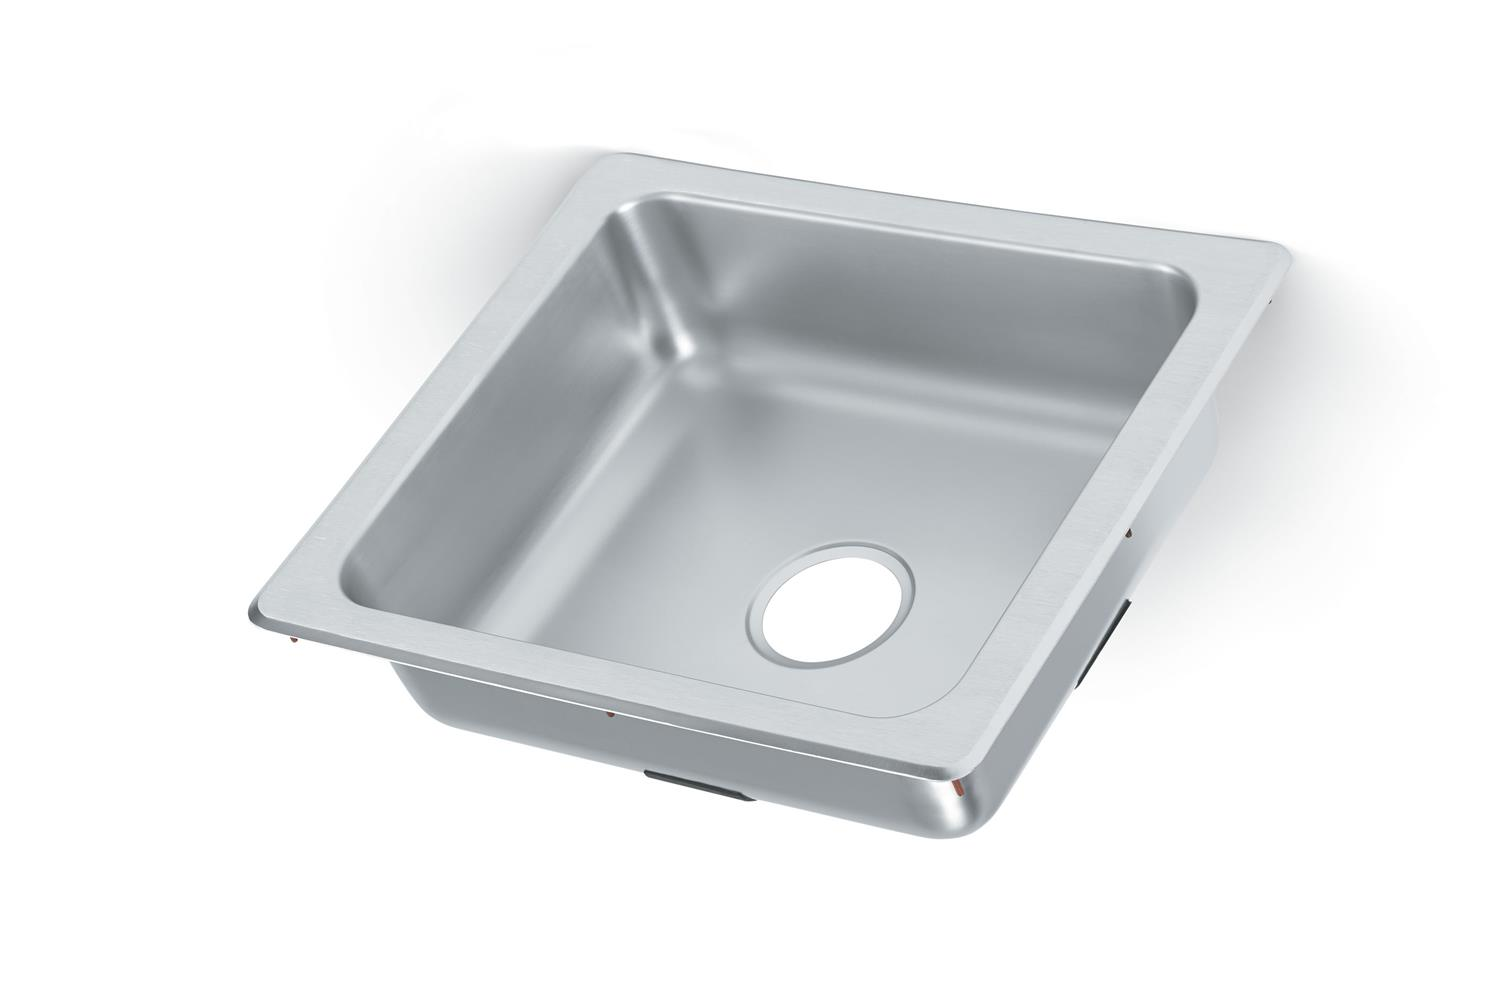 Vollrath 229-1 Self-Rimming Single bowl sink